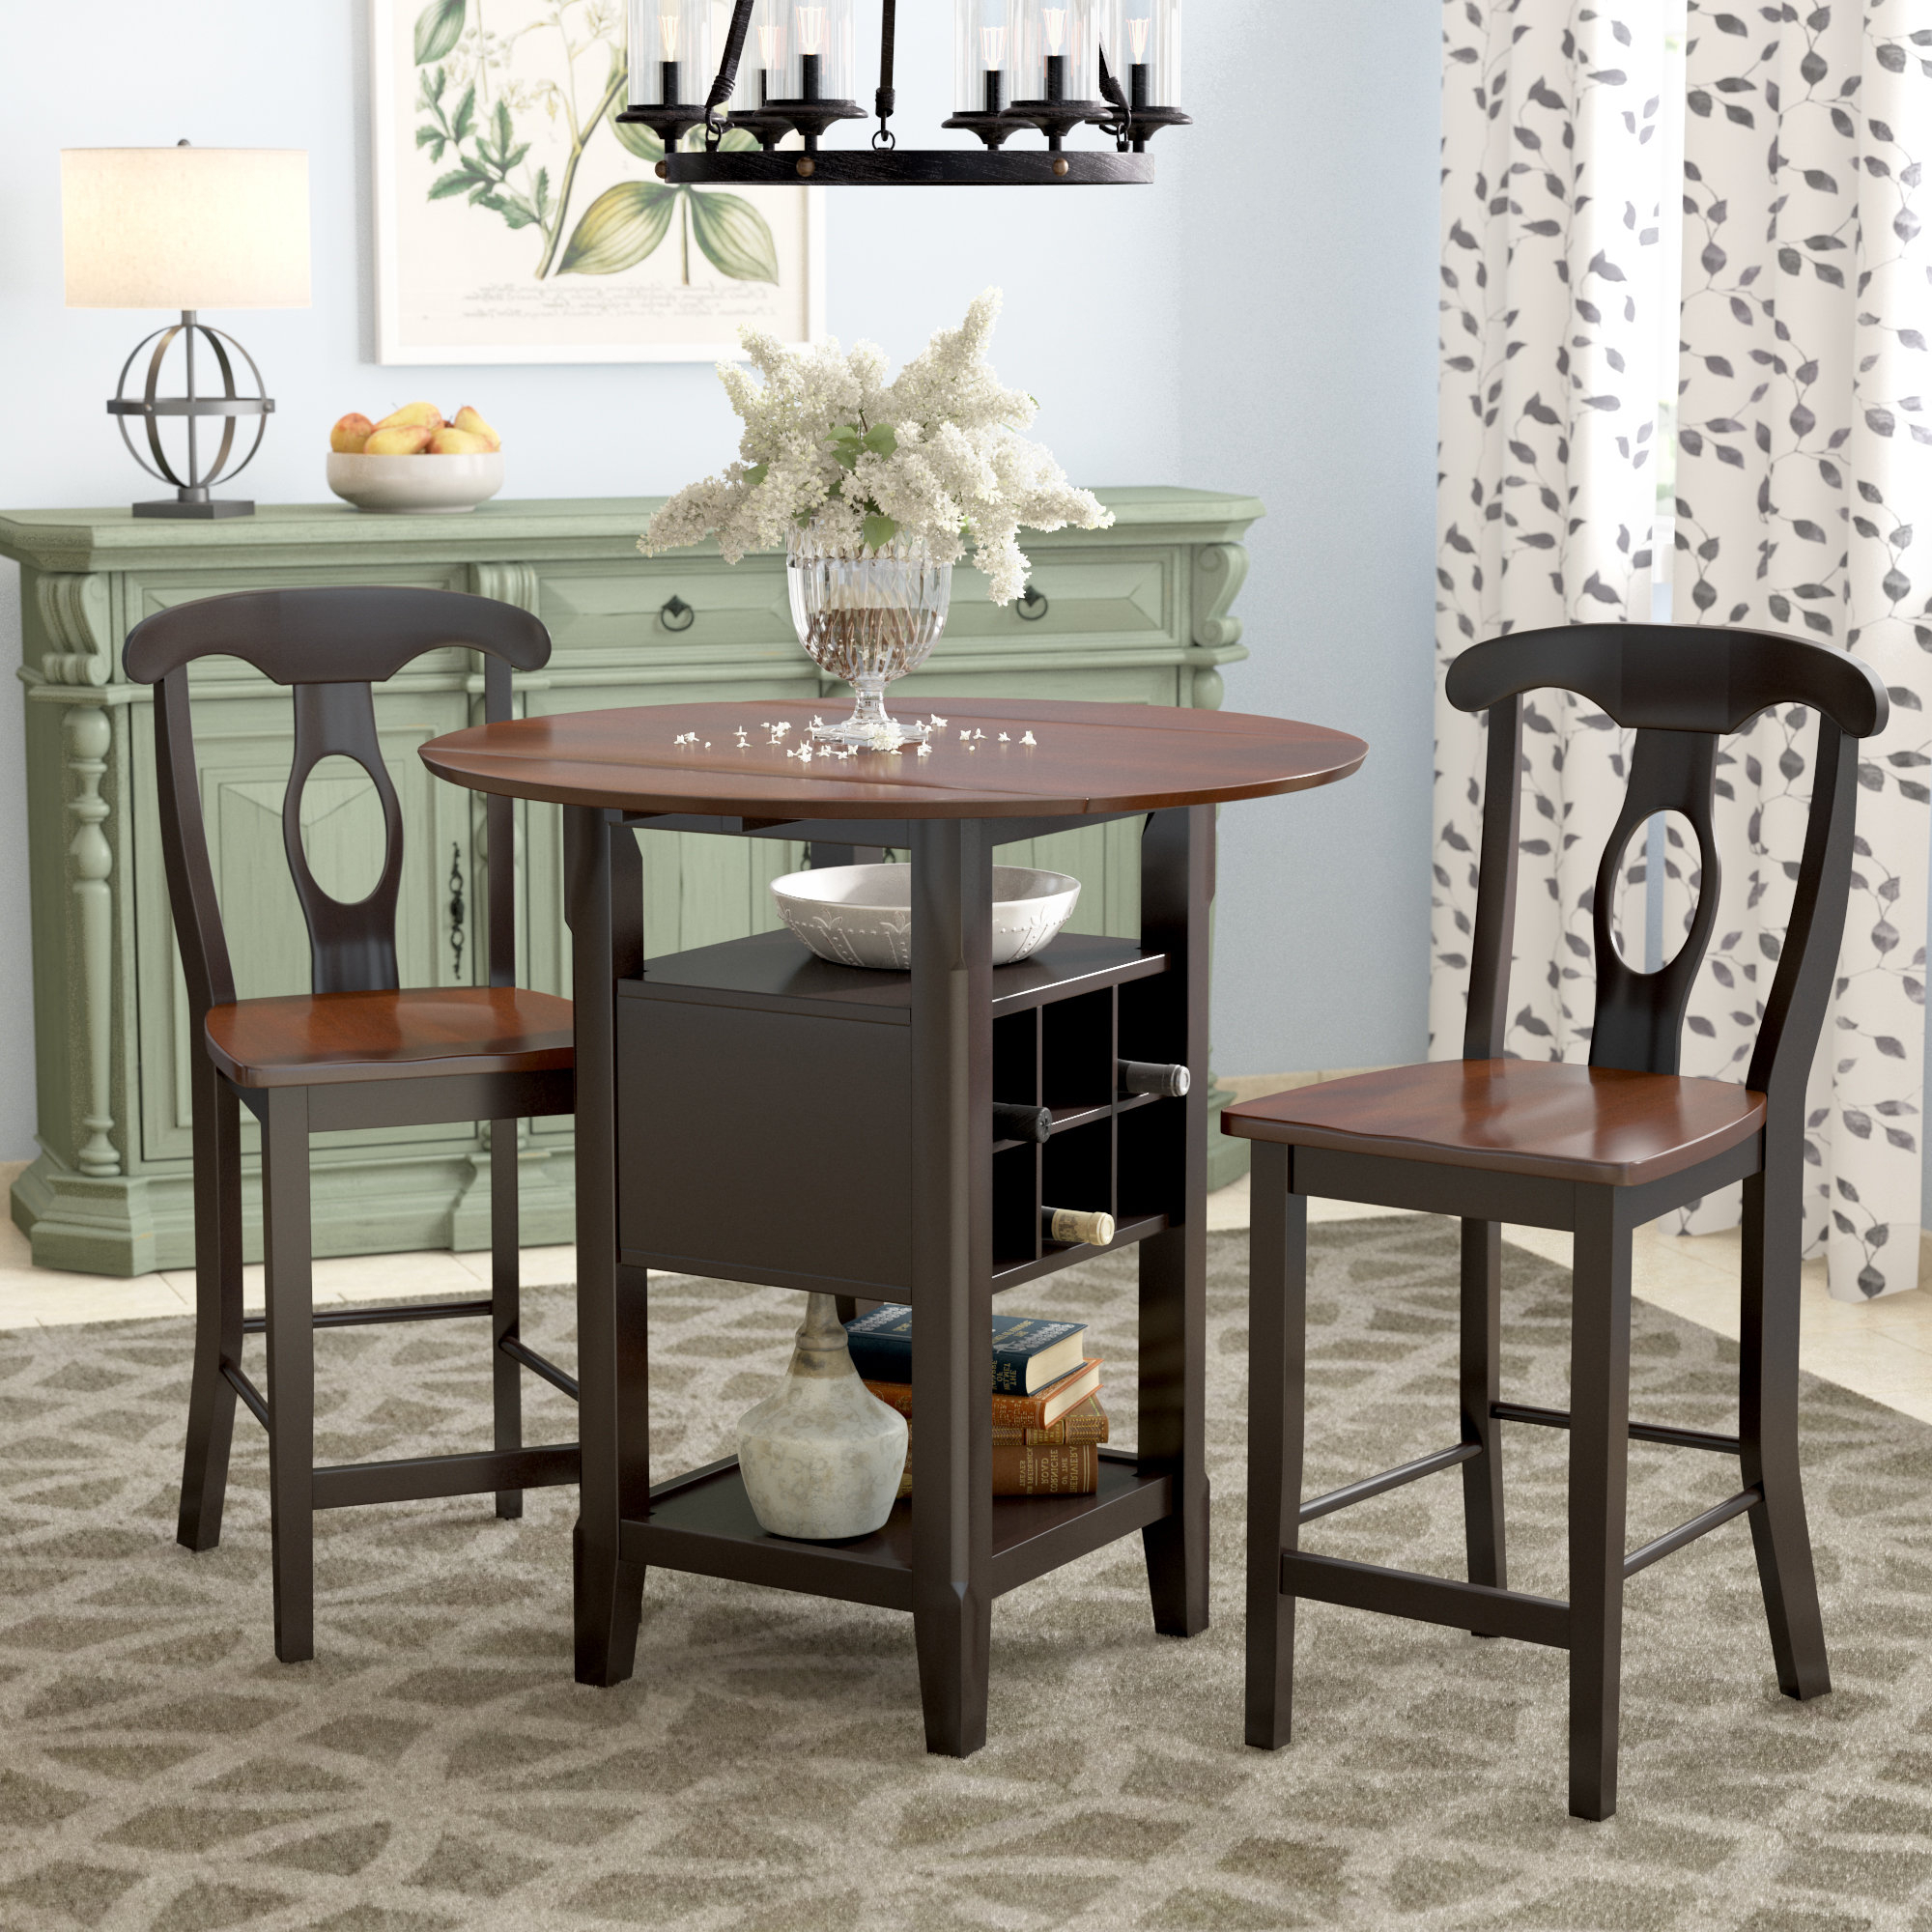 Winsted 4 Piece Counter Height Dining Sets Pertaining To Most Recently Released August Grove Strope 3 Piece Dining Set & Reviews (View 23 of 25)